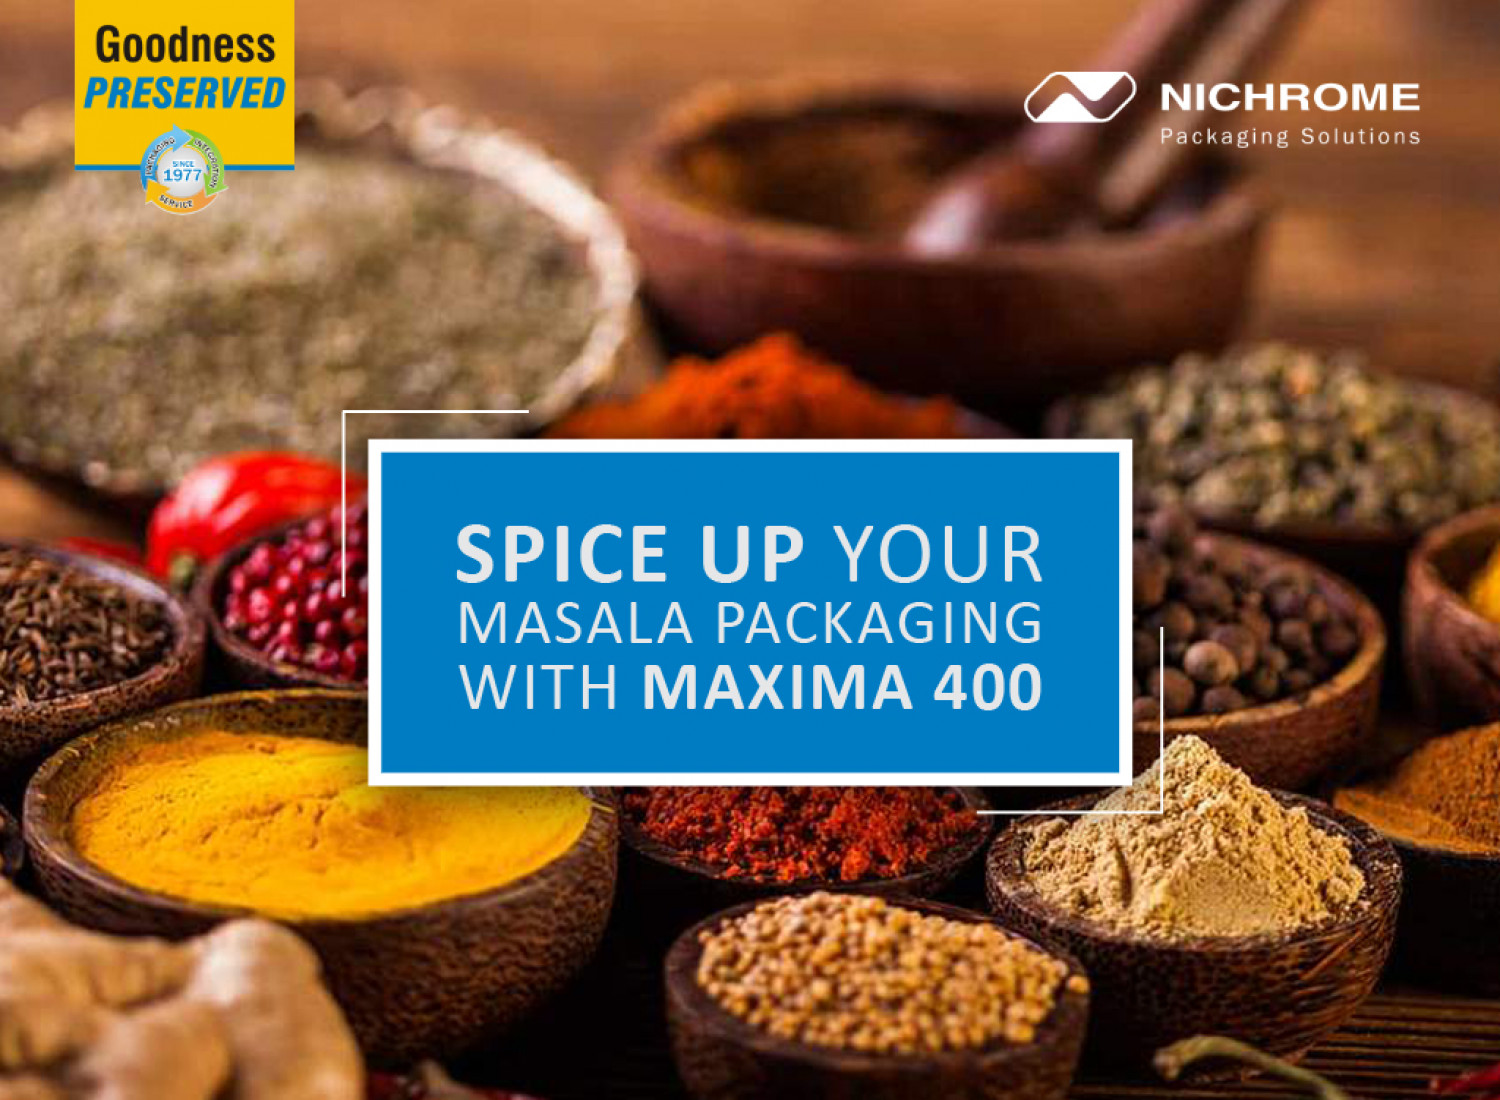 Spice Up Your Masala Packaging Maxima 400 Infographic